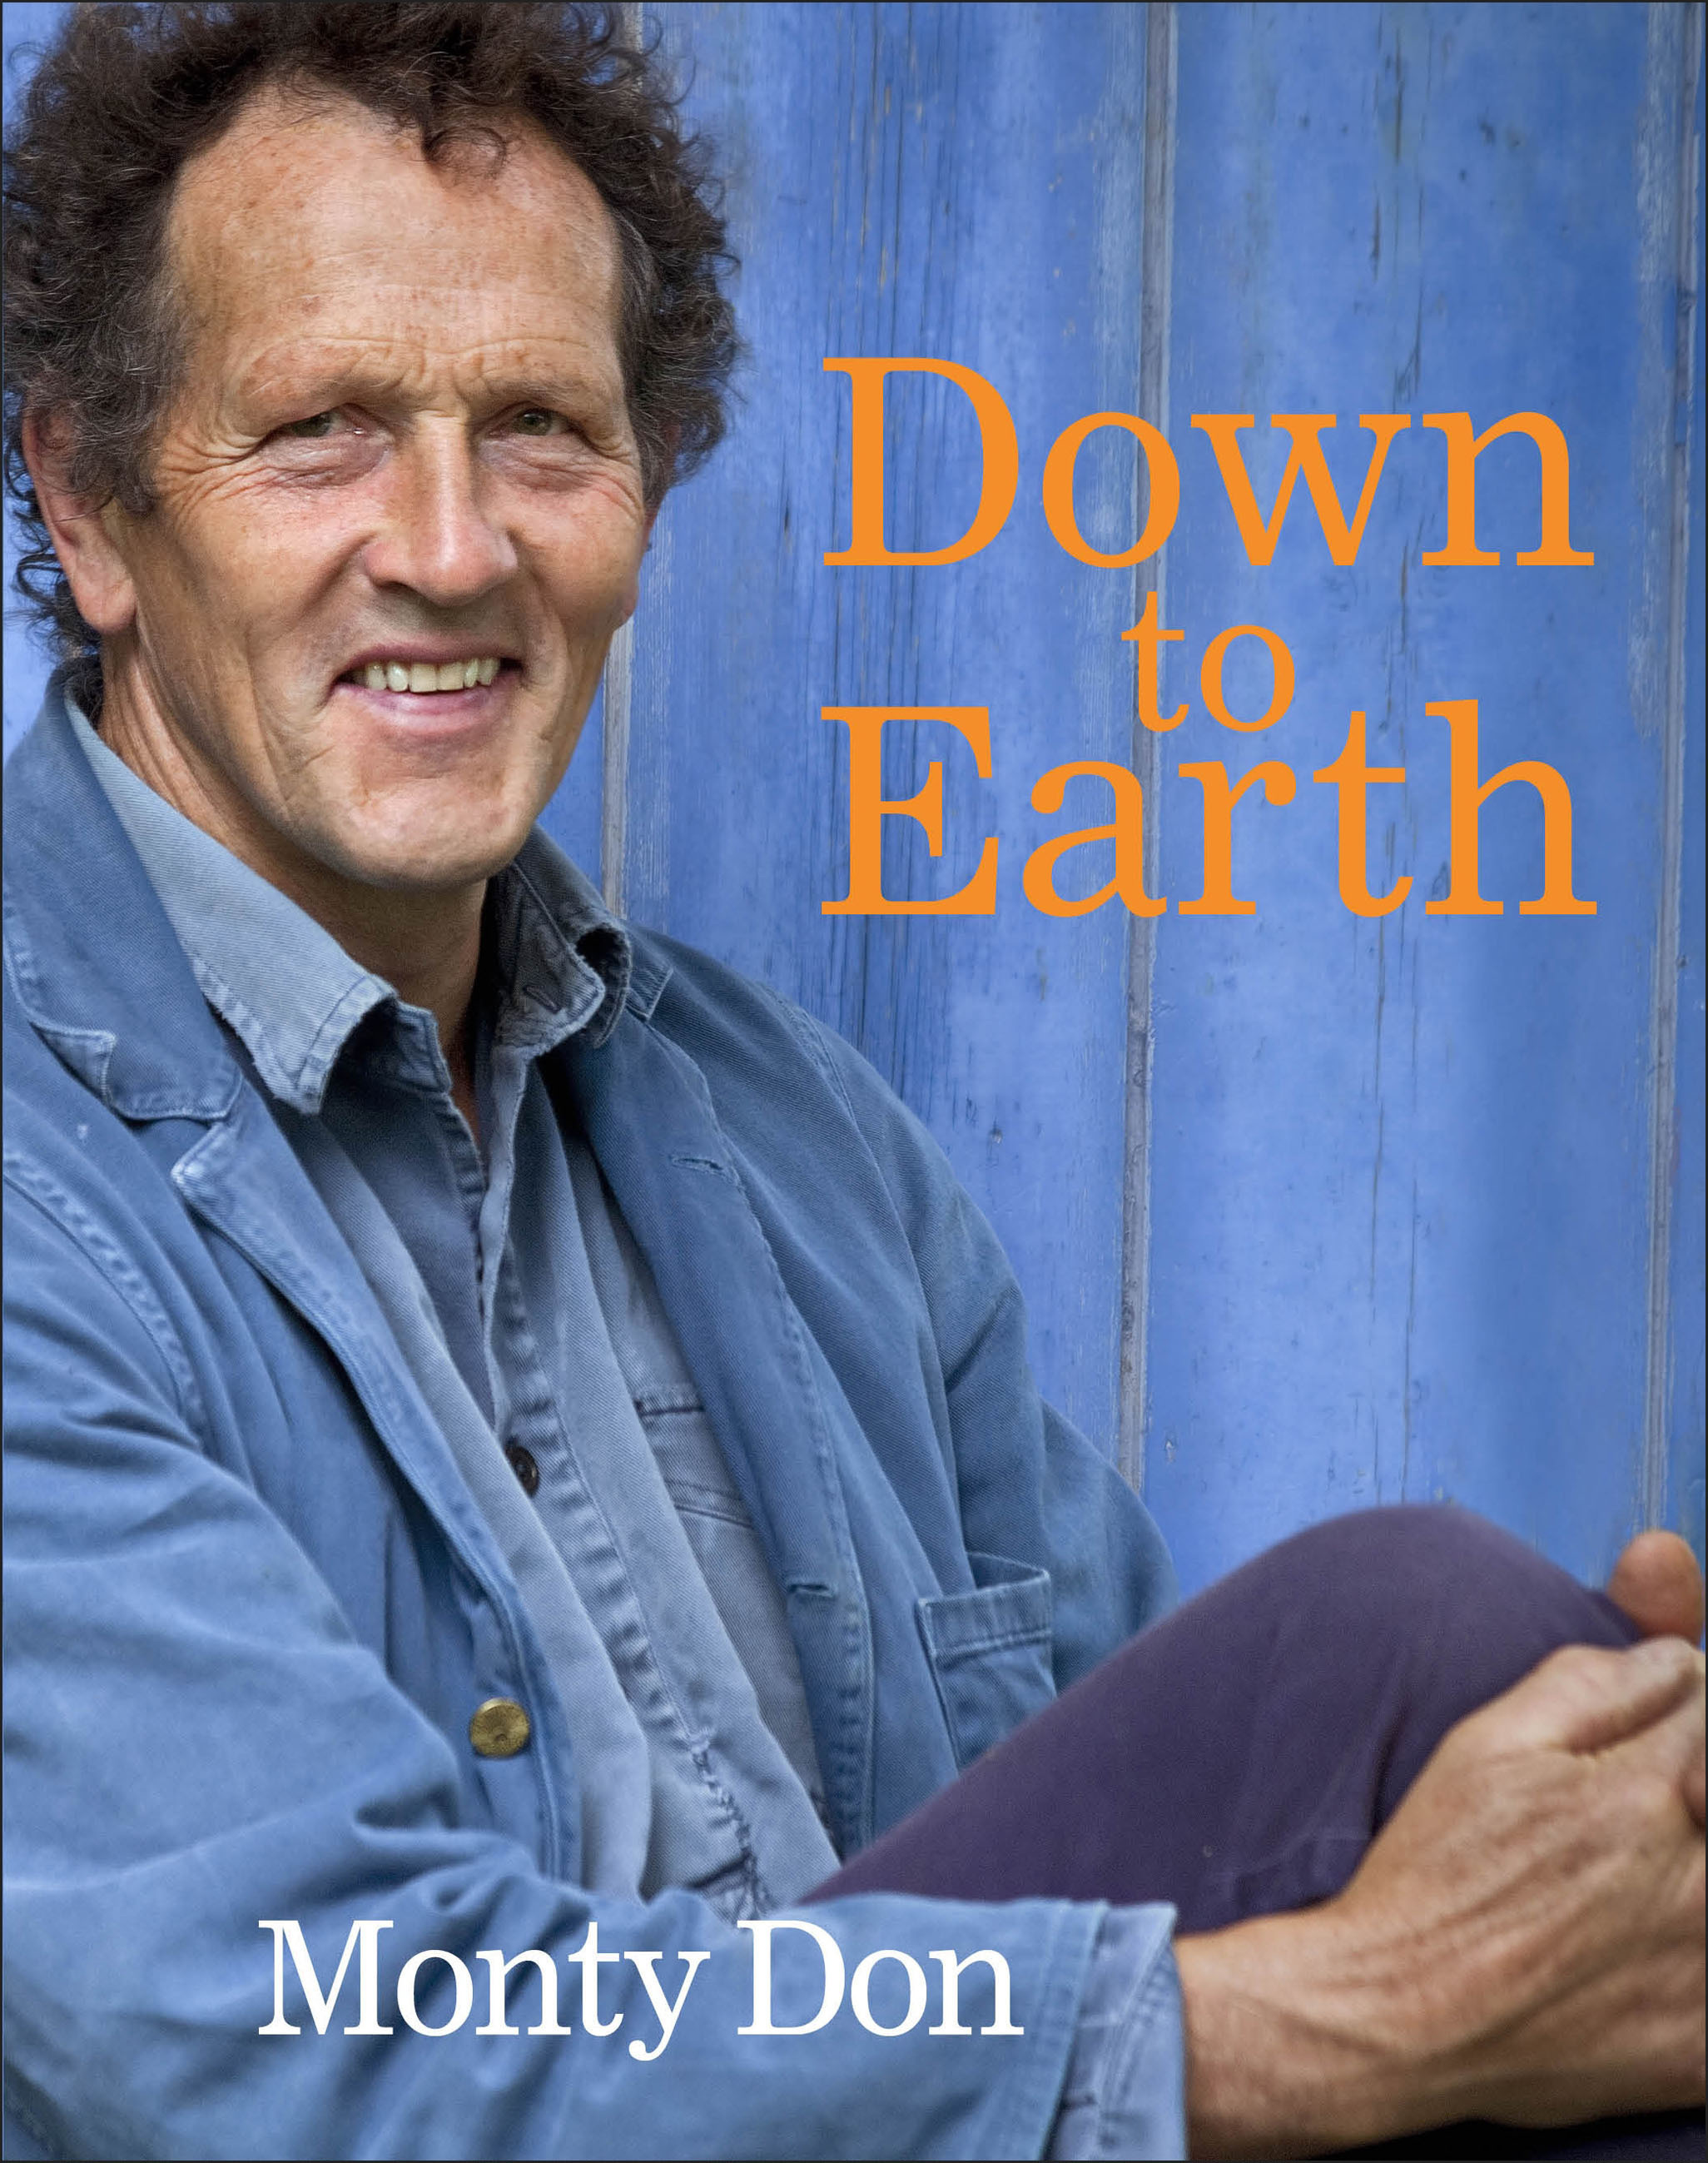 MONTY DON: Easy to digest